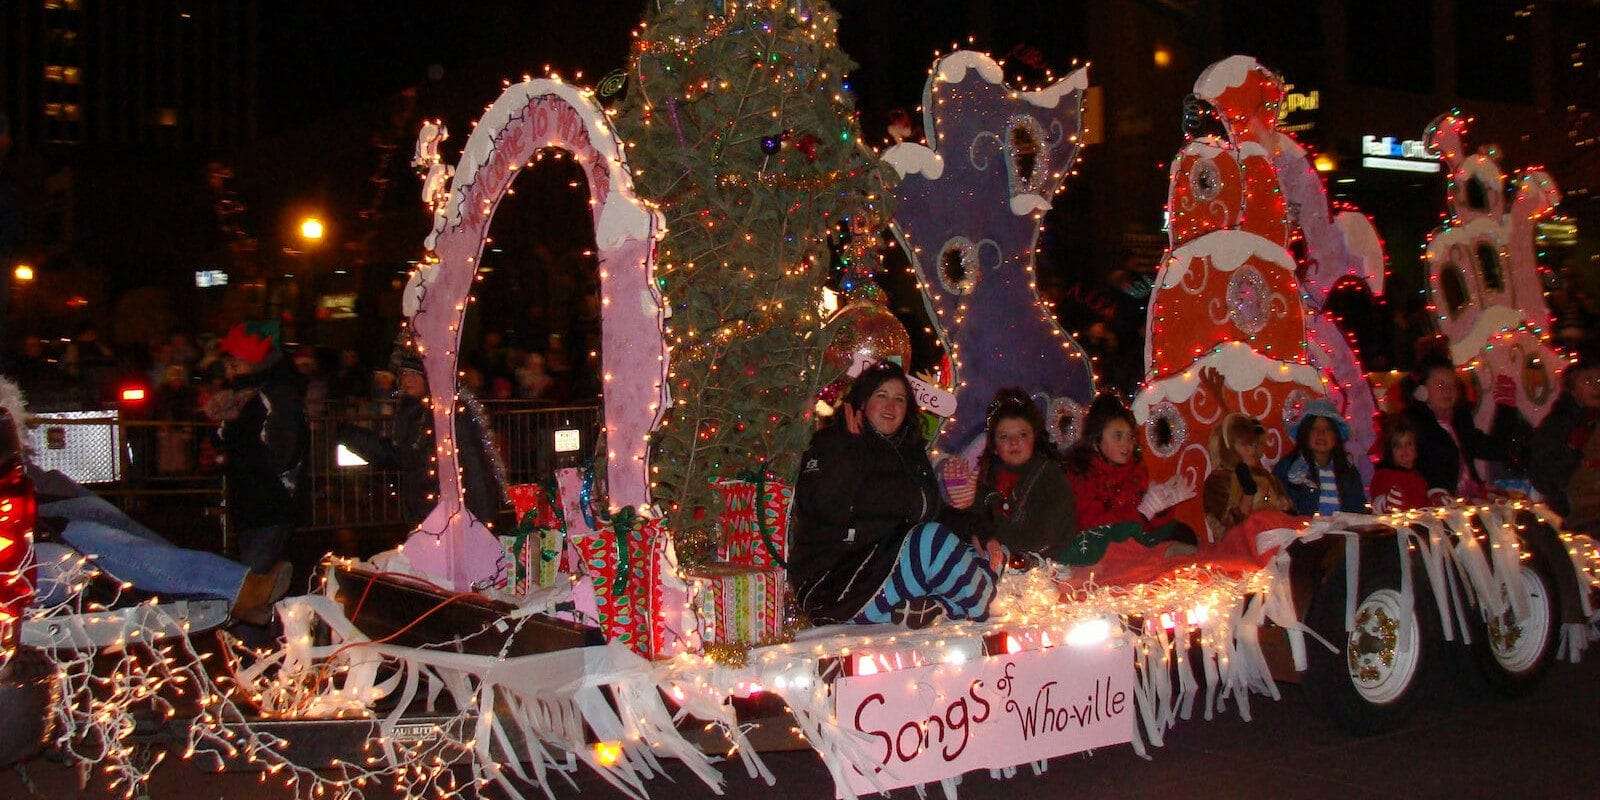 """Image of the """"Song of Whoville"""" float at the Festival of Lights in Colordo Springs, Colorado"""